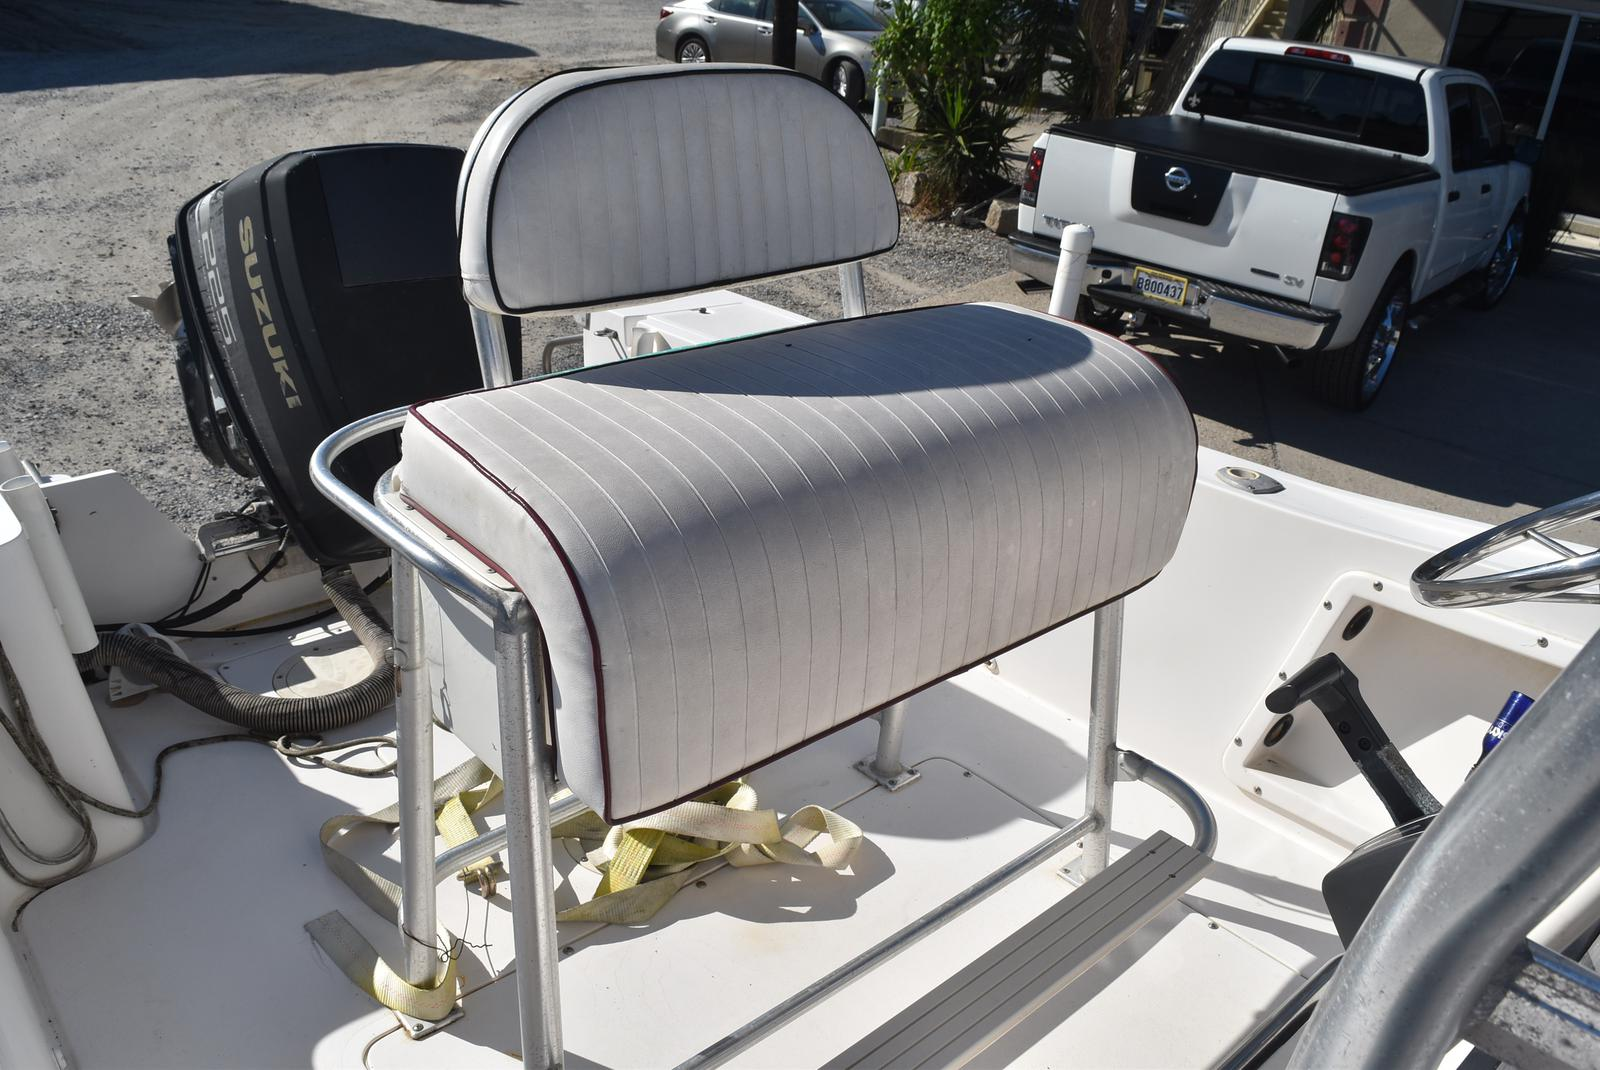 1996 Mako boat for sale, model of the boat is 22 Mako & Image # 361 of 390